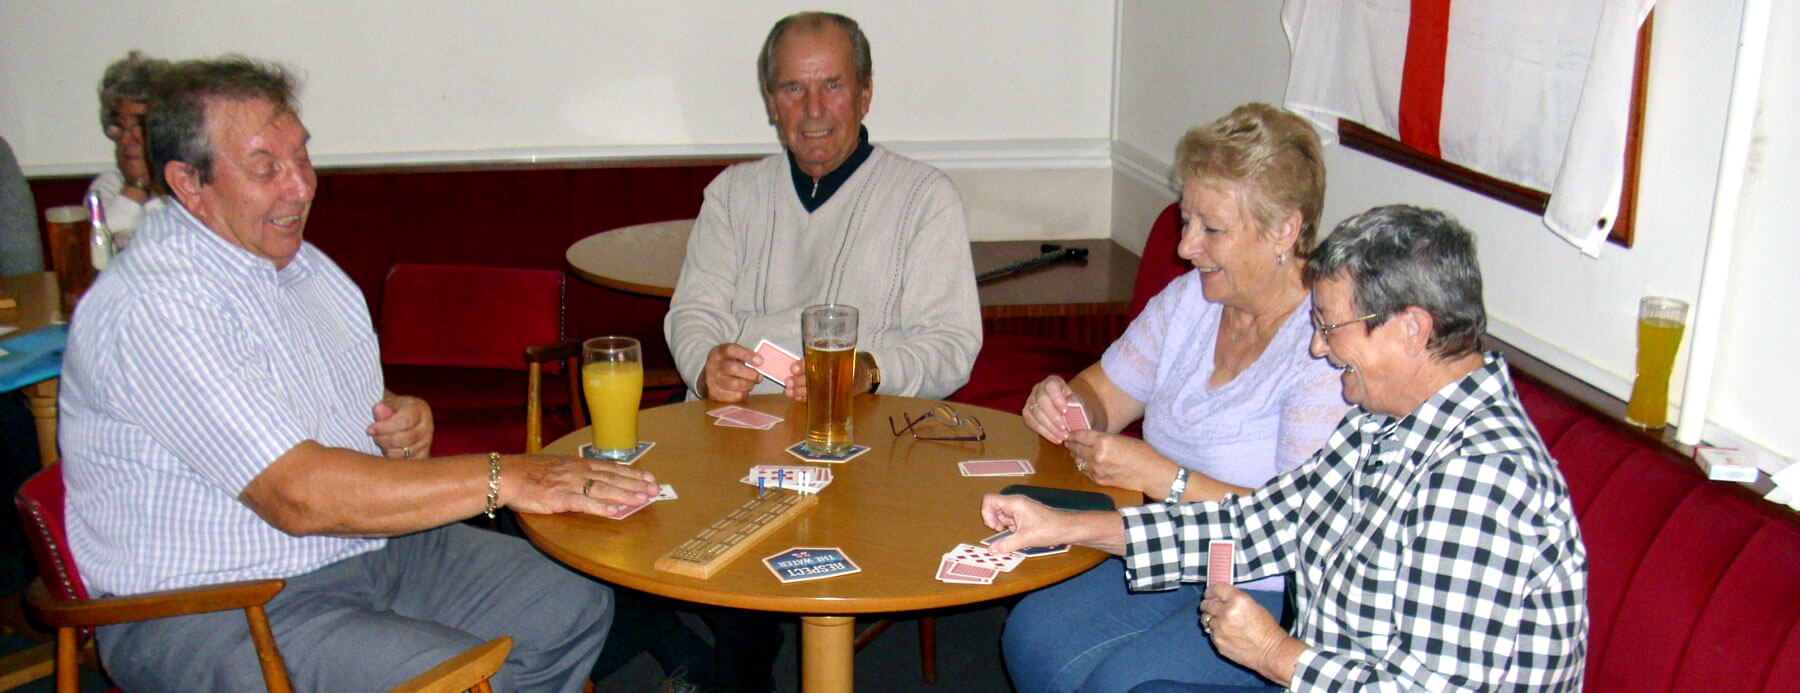 Club members playing a great card game